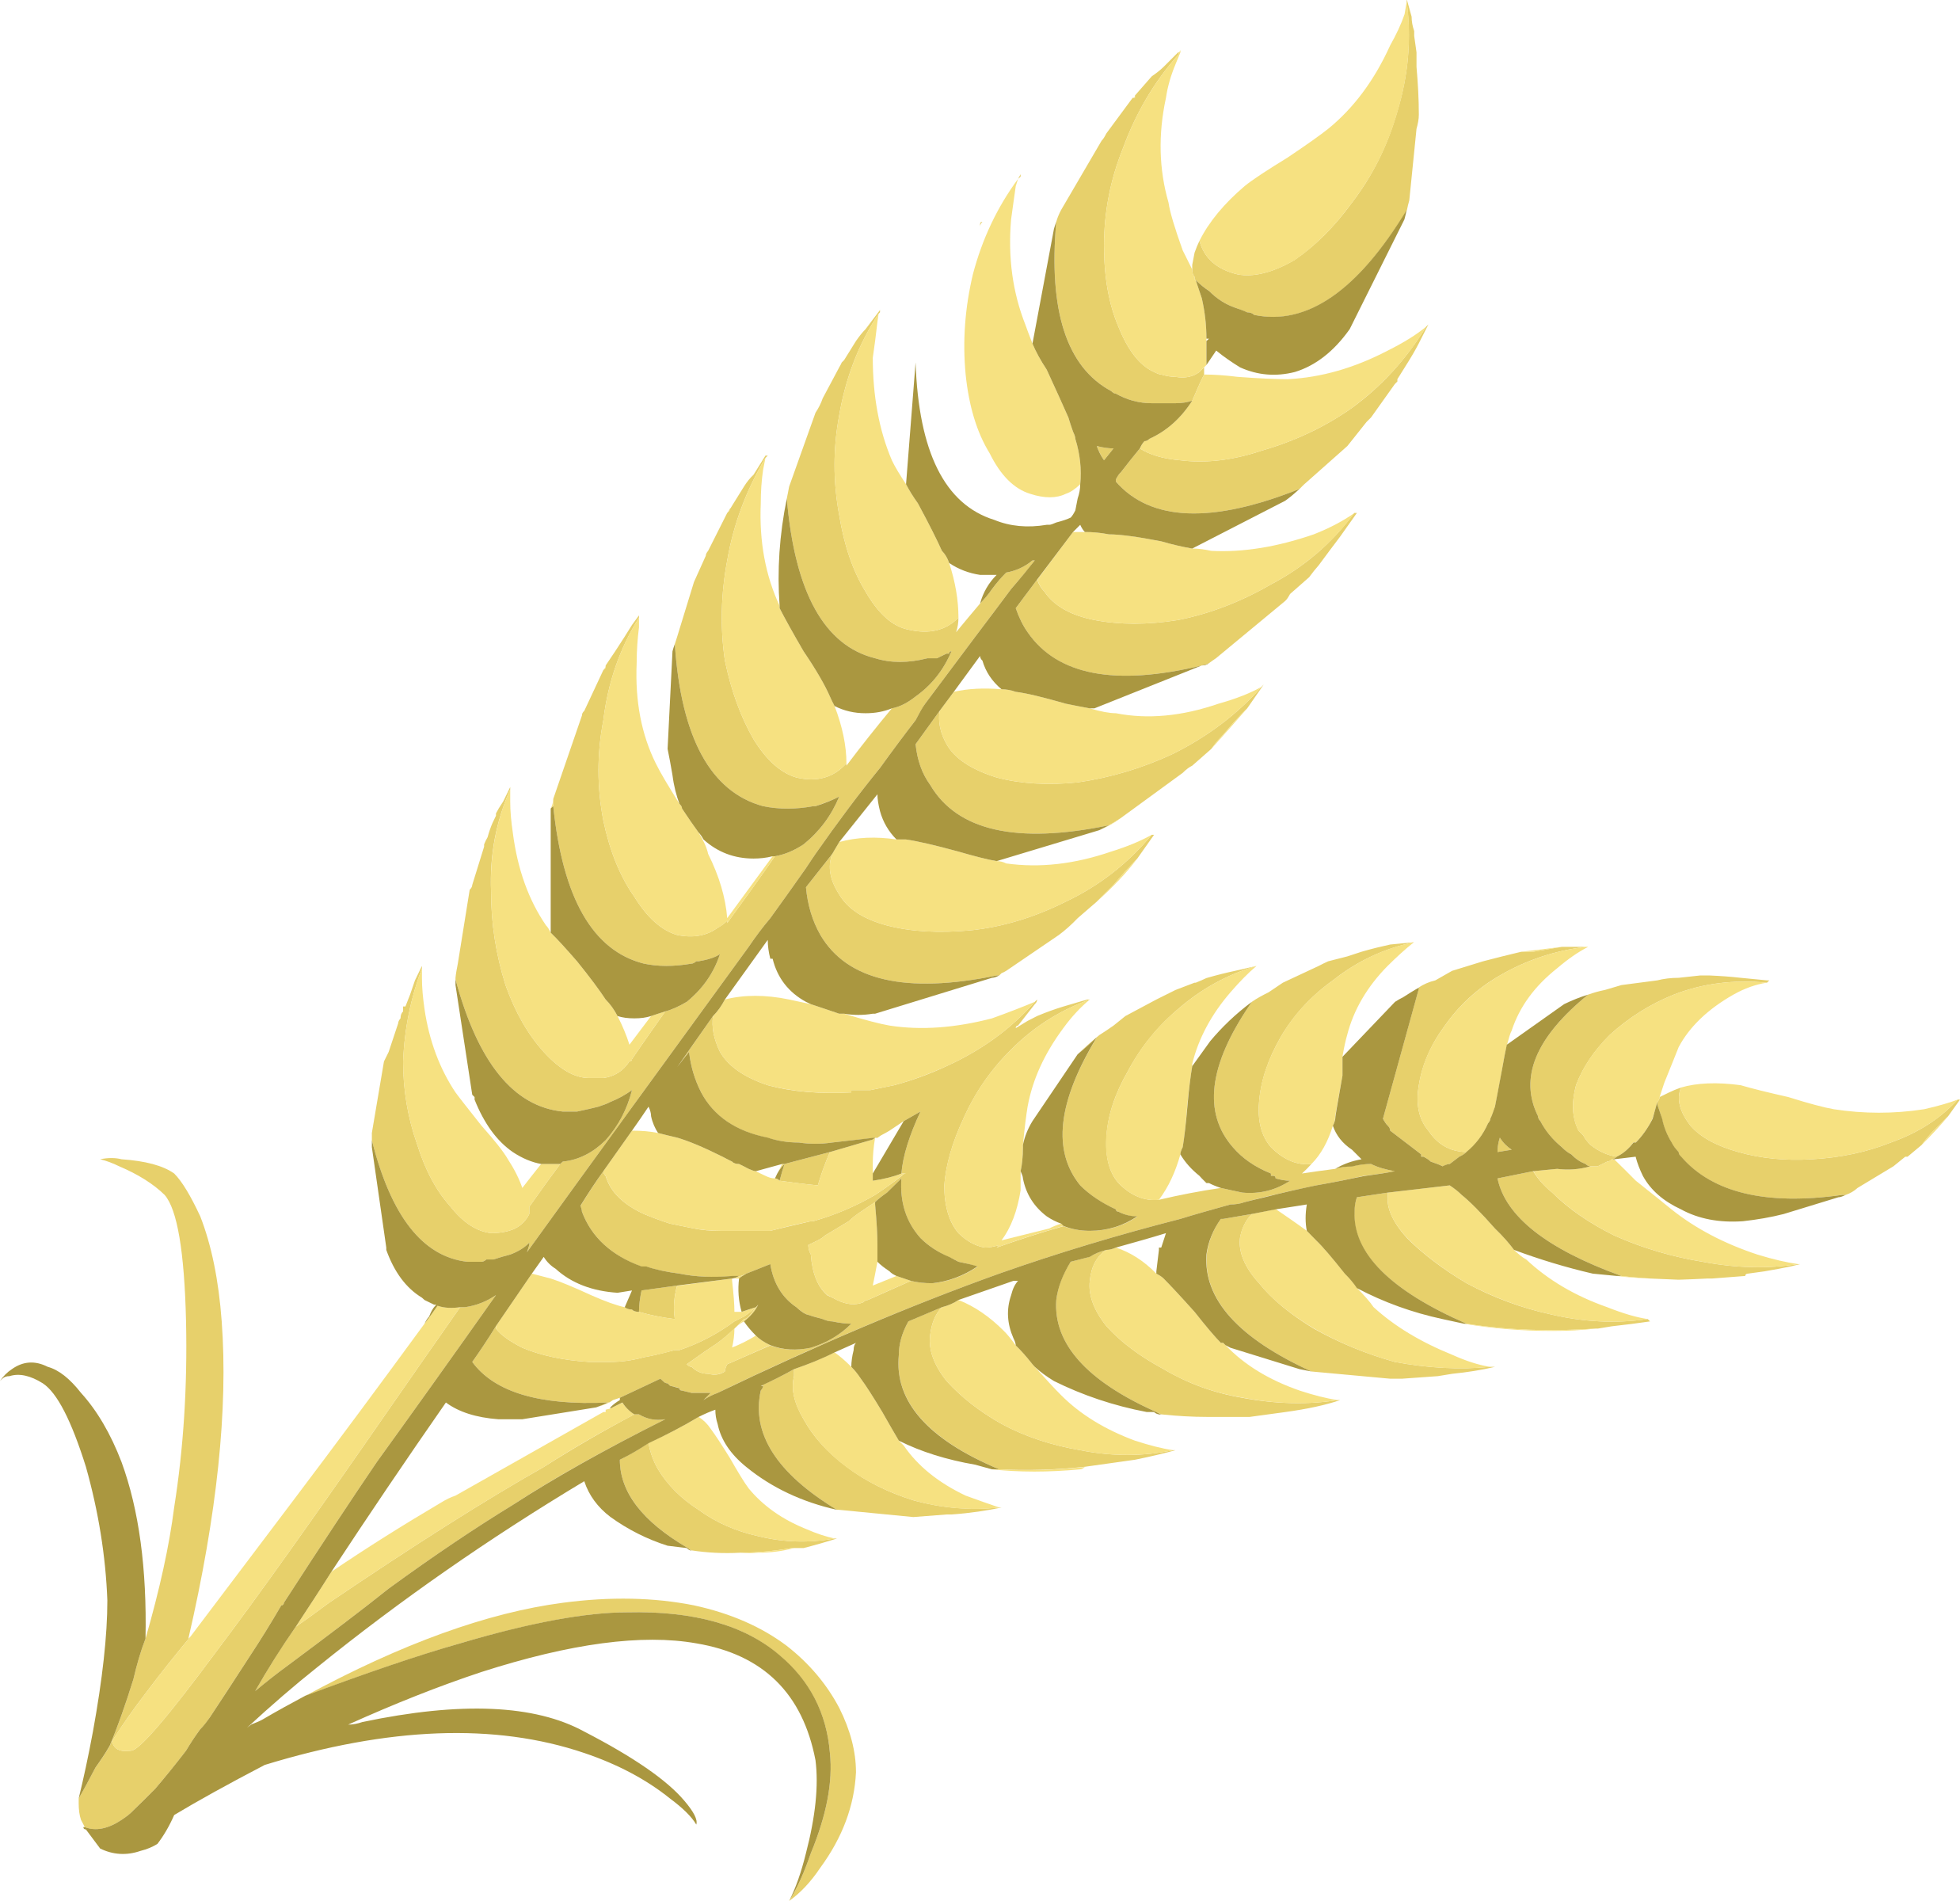 Grains clipart #8